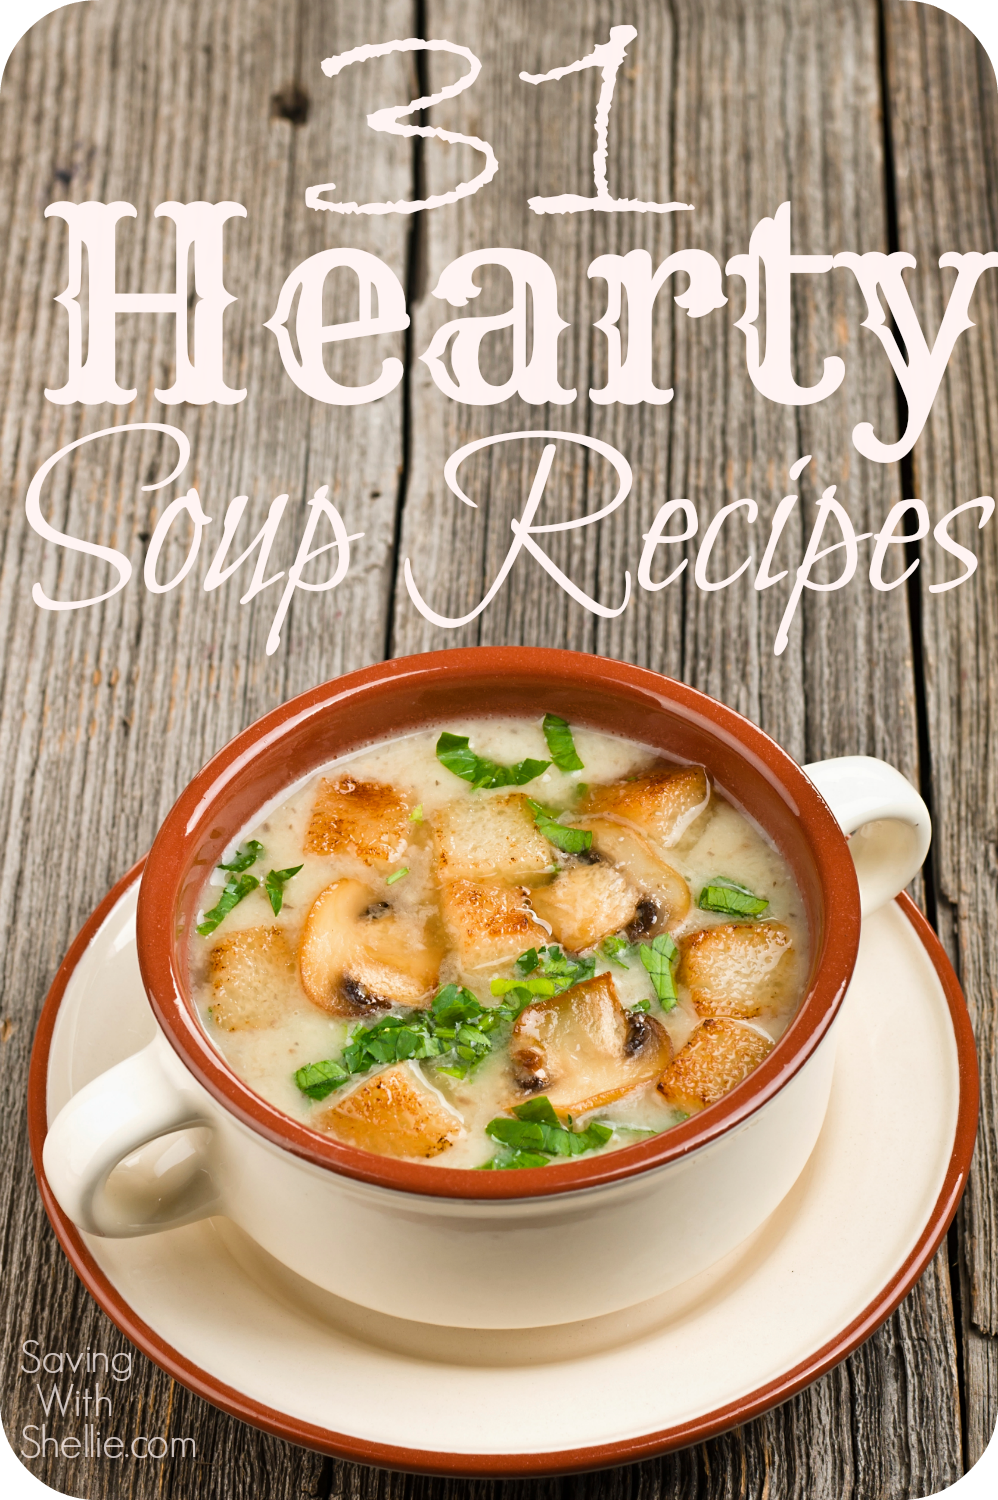 31 Hearty Soup Recipes Pin This For Some Great Dinner Ideas On A Cold Day